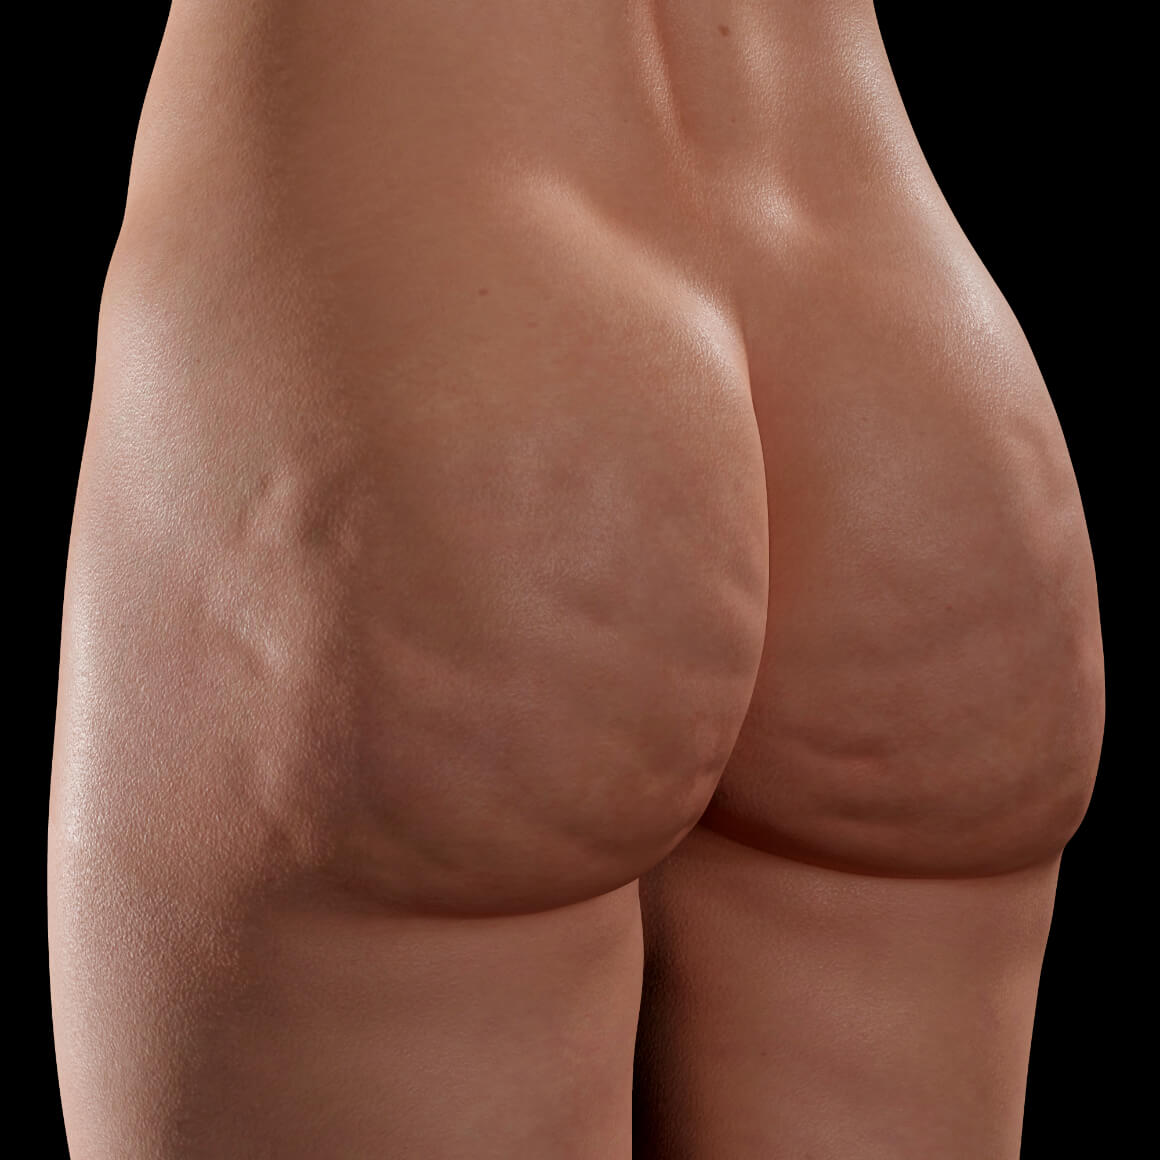 Angled view of the buttocks of a female patient from Clinique Chloé showing cellulite